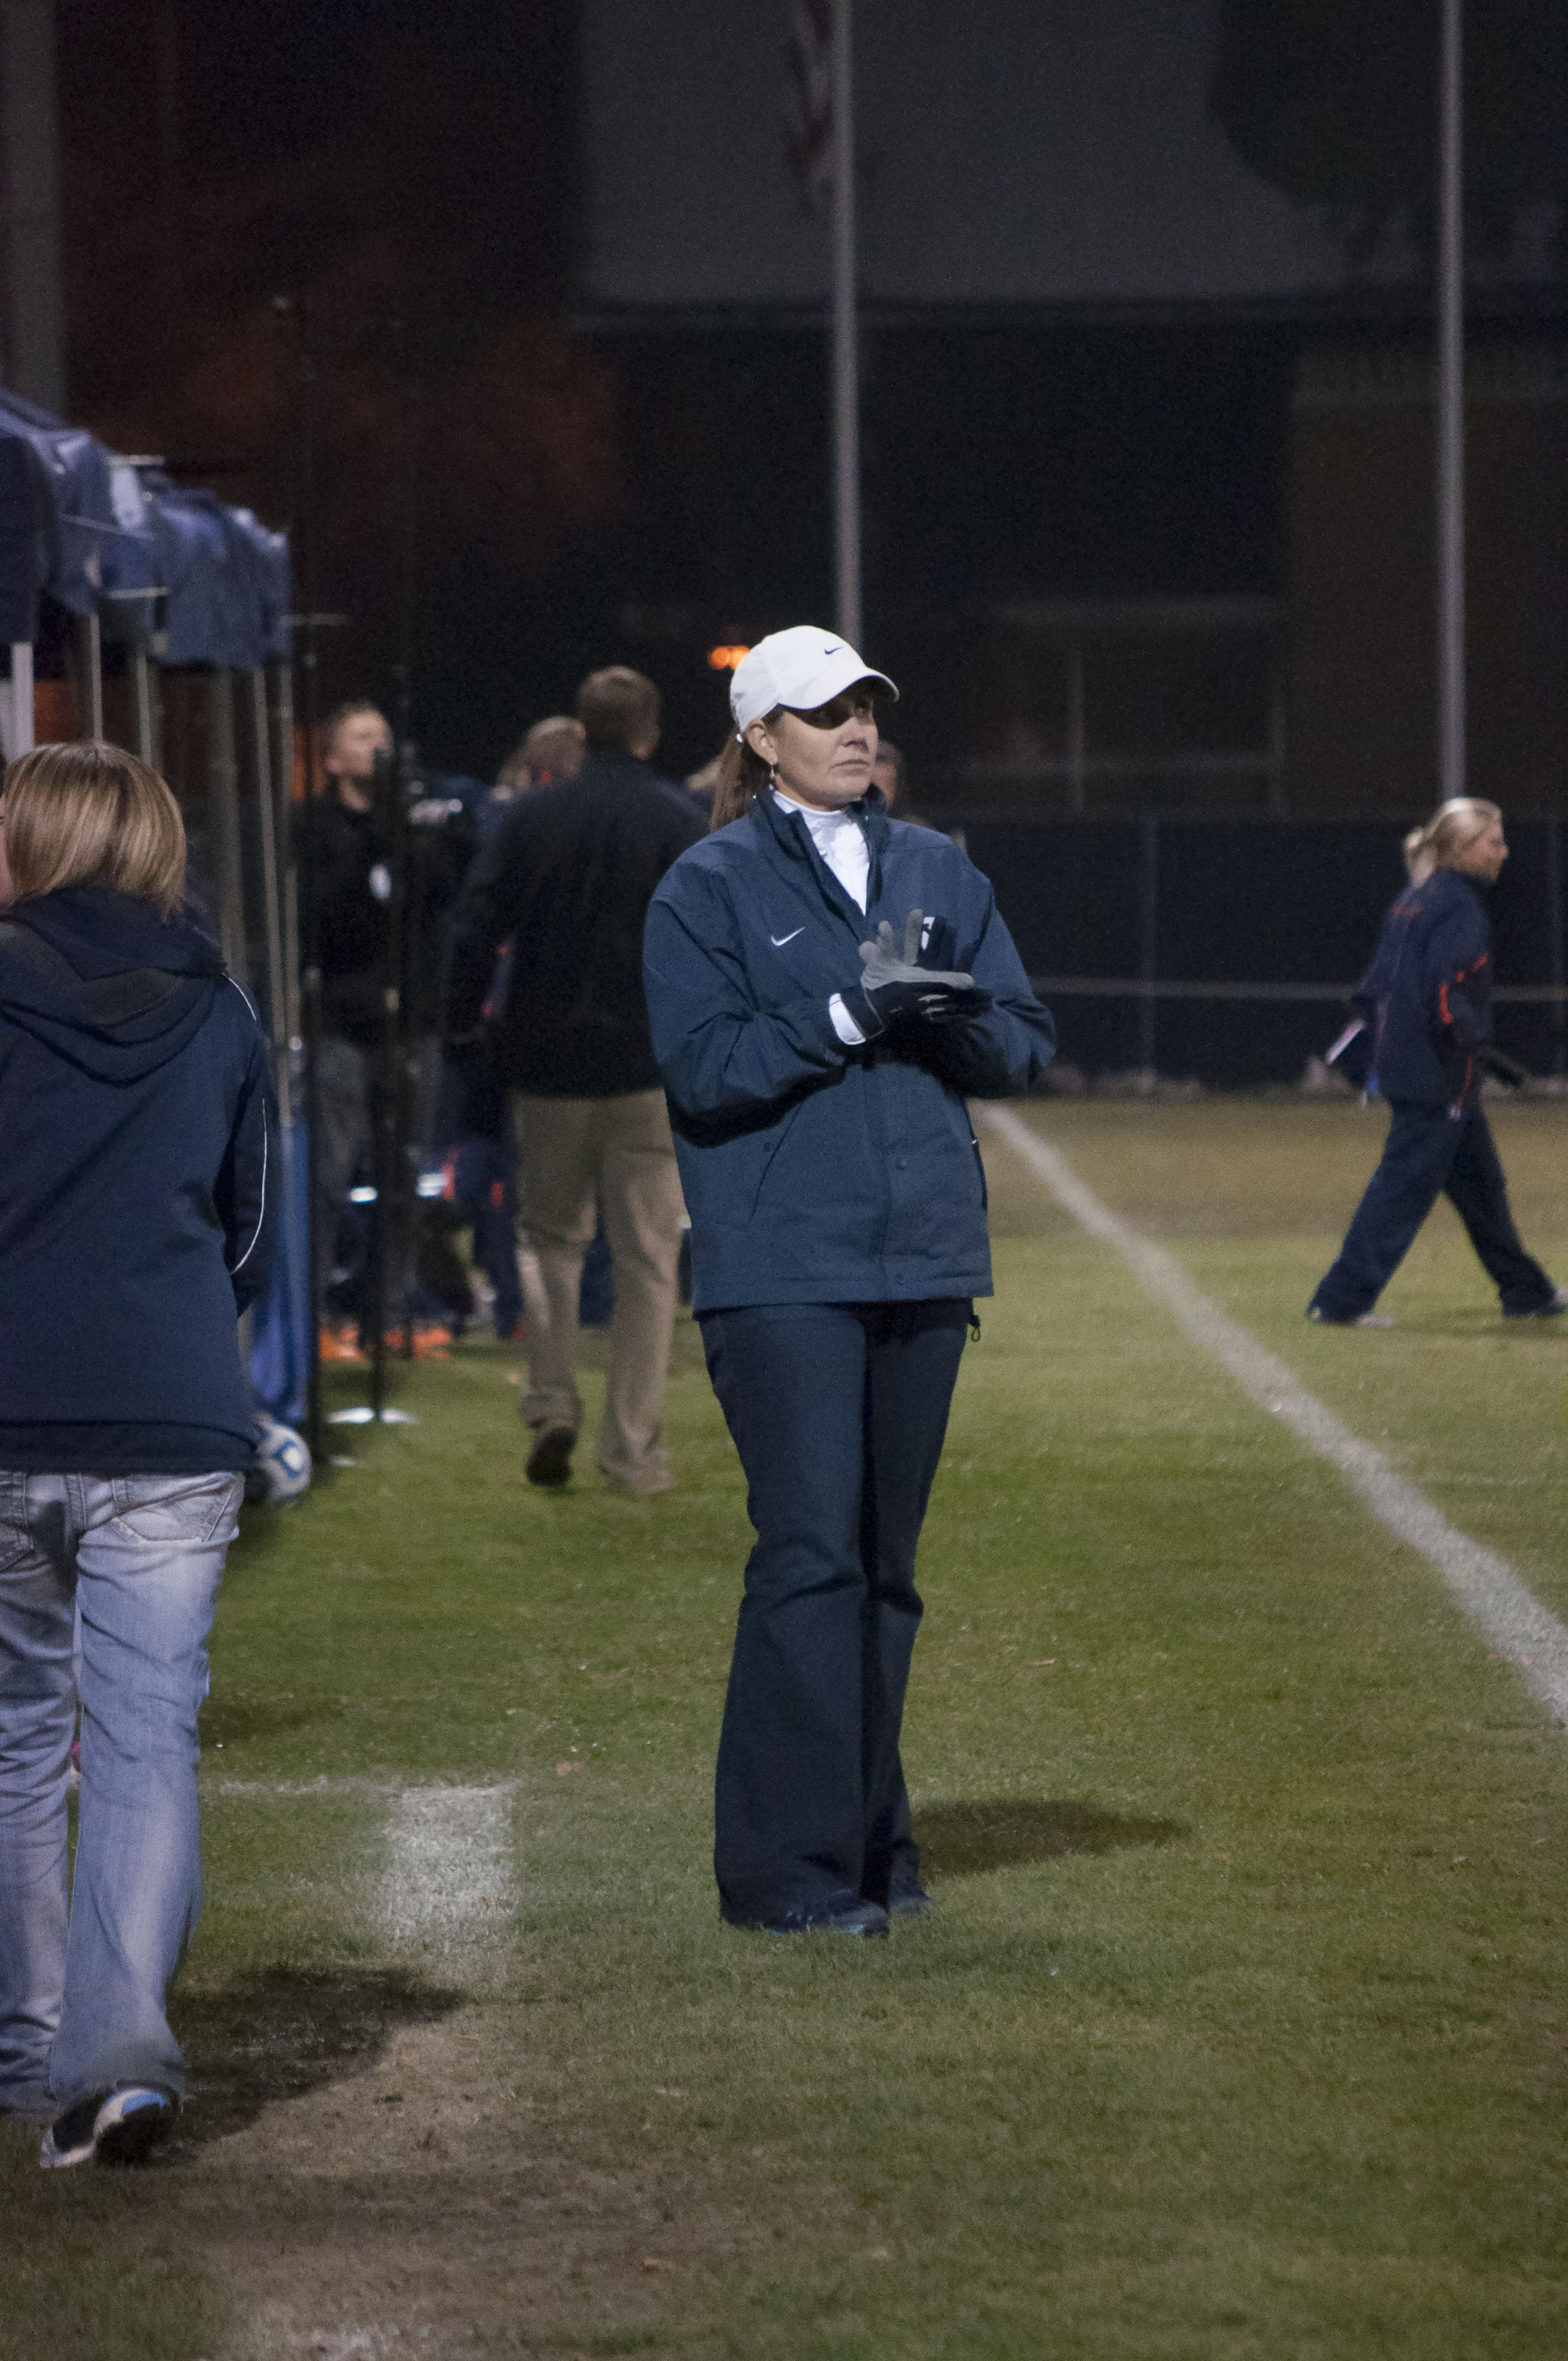 BYU women's soccer coach Jennifer Rockwood won her 300th game this season, in her 19th year of coaching the Cougars, including last year's trip to the Elite Eight of the NCAA Tournament. (Photo by Whitnie Soelberg)